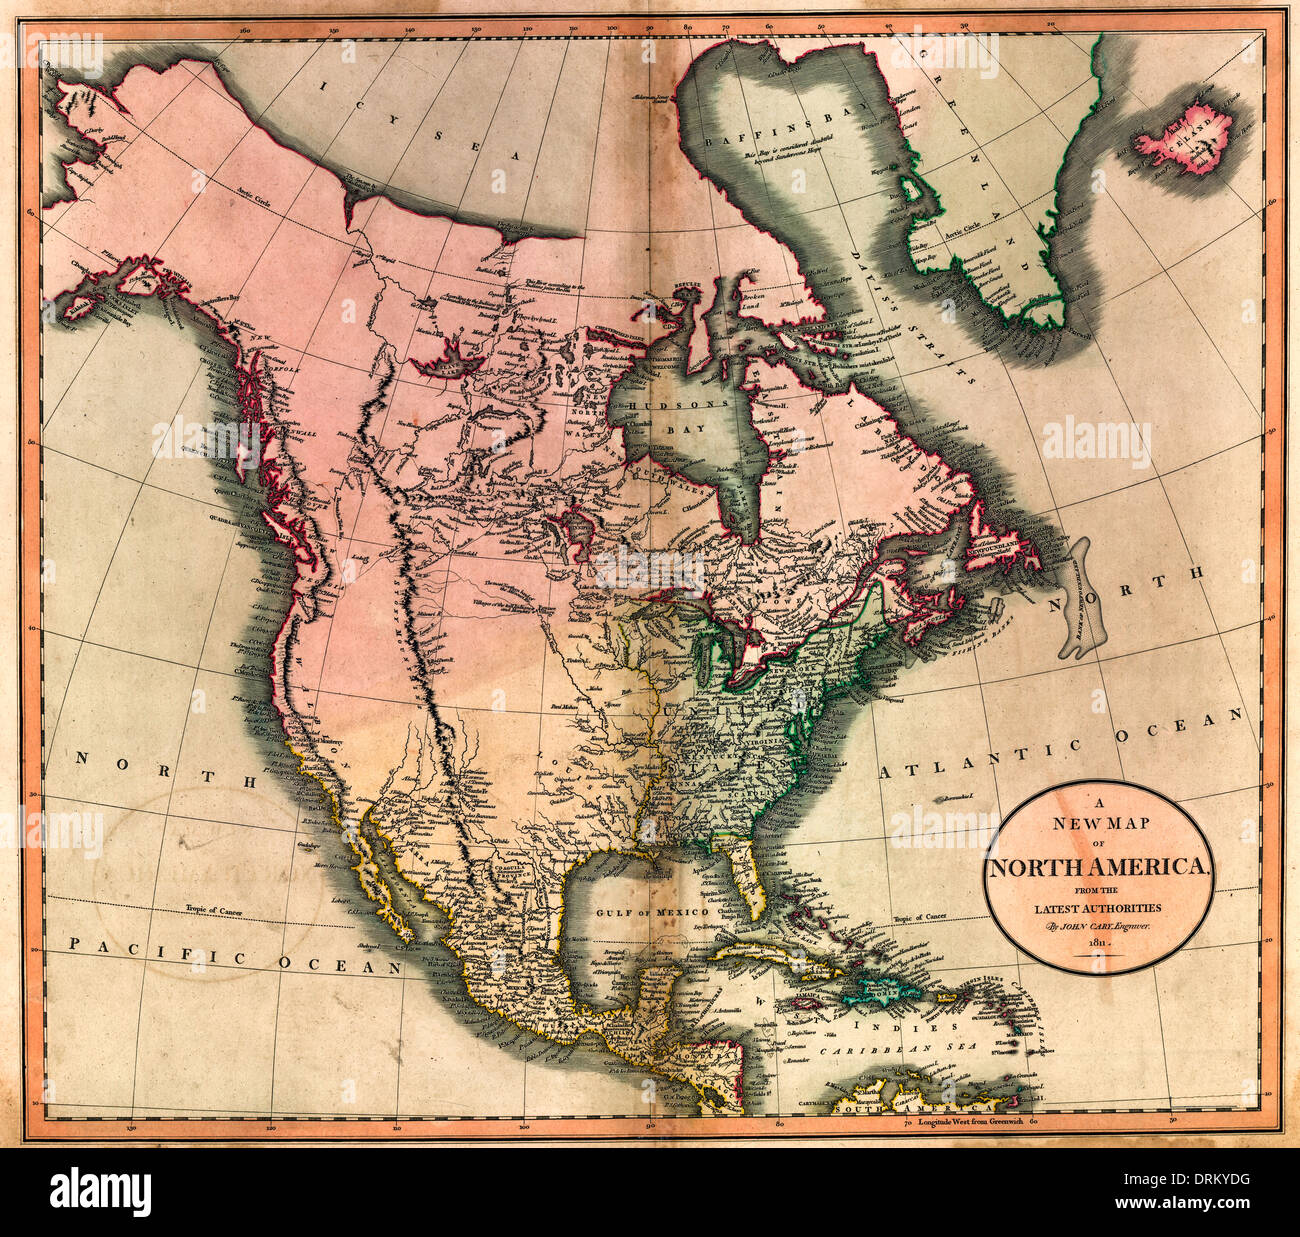 A new map of North America from